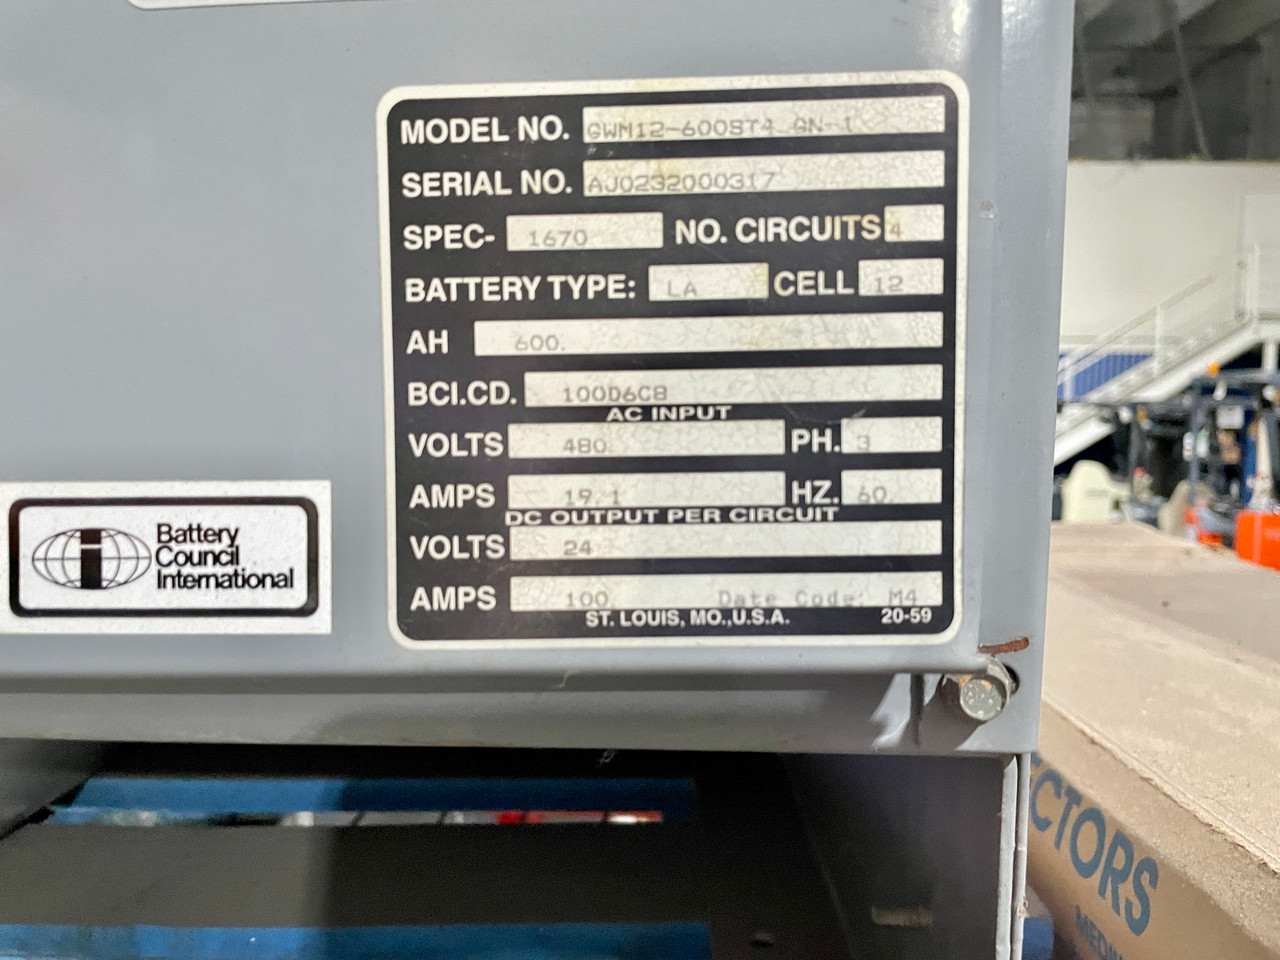 4 Bank 24 Volt GNB 3 Phase Lift Battery Charger, 600 Amp Hours,  480 Volts Input